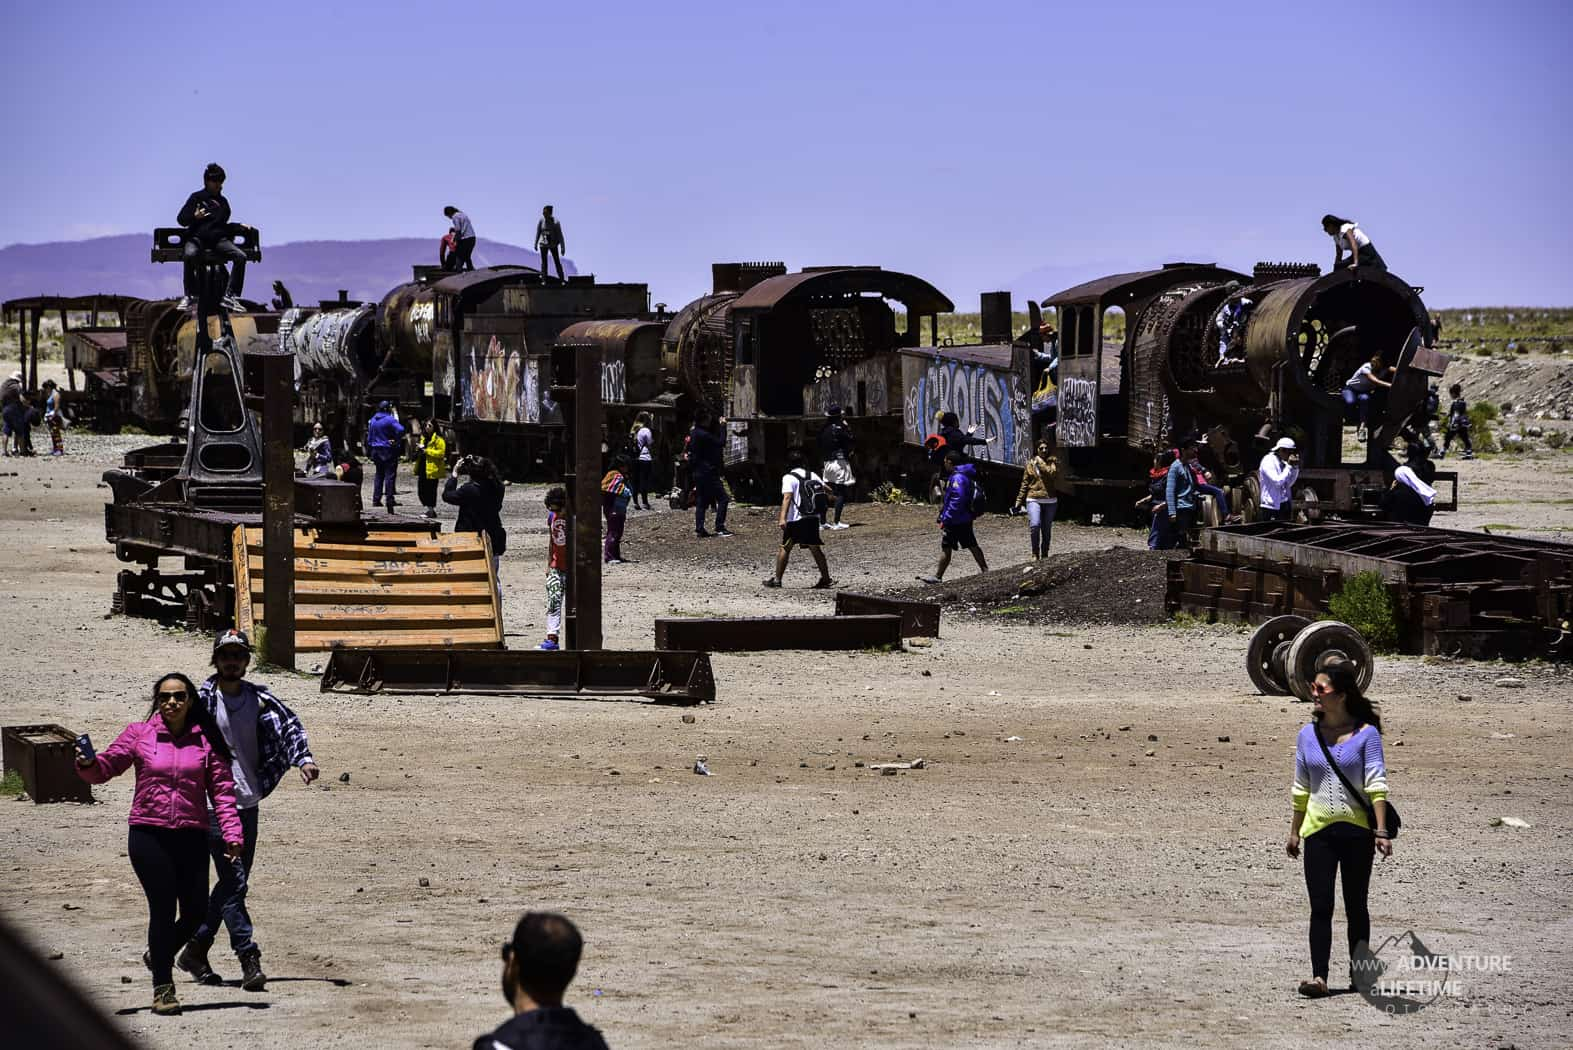 Tourists in Train Graveyard in Uyuni, Bolivia